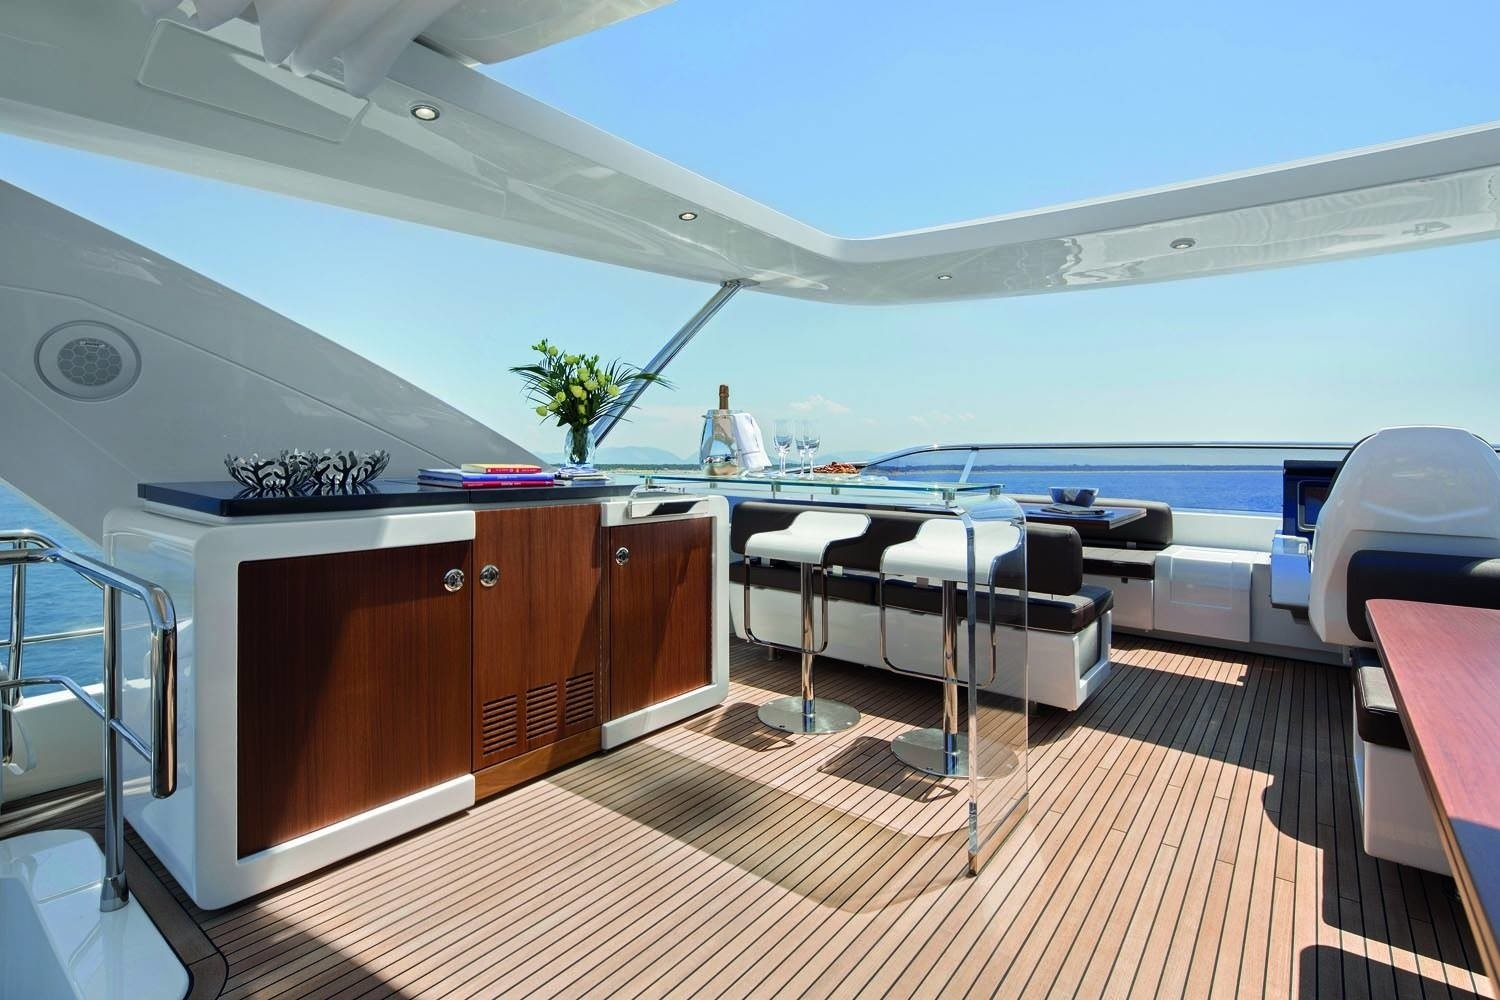 The 25m Yacht NORTH STAR